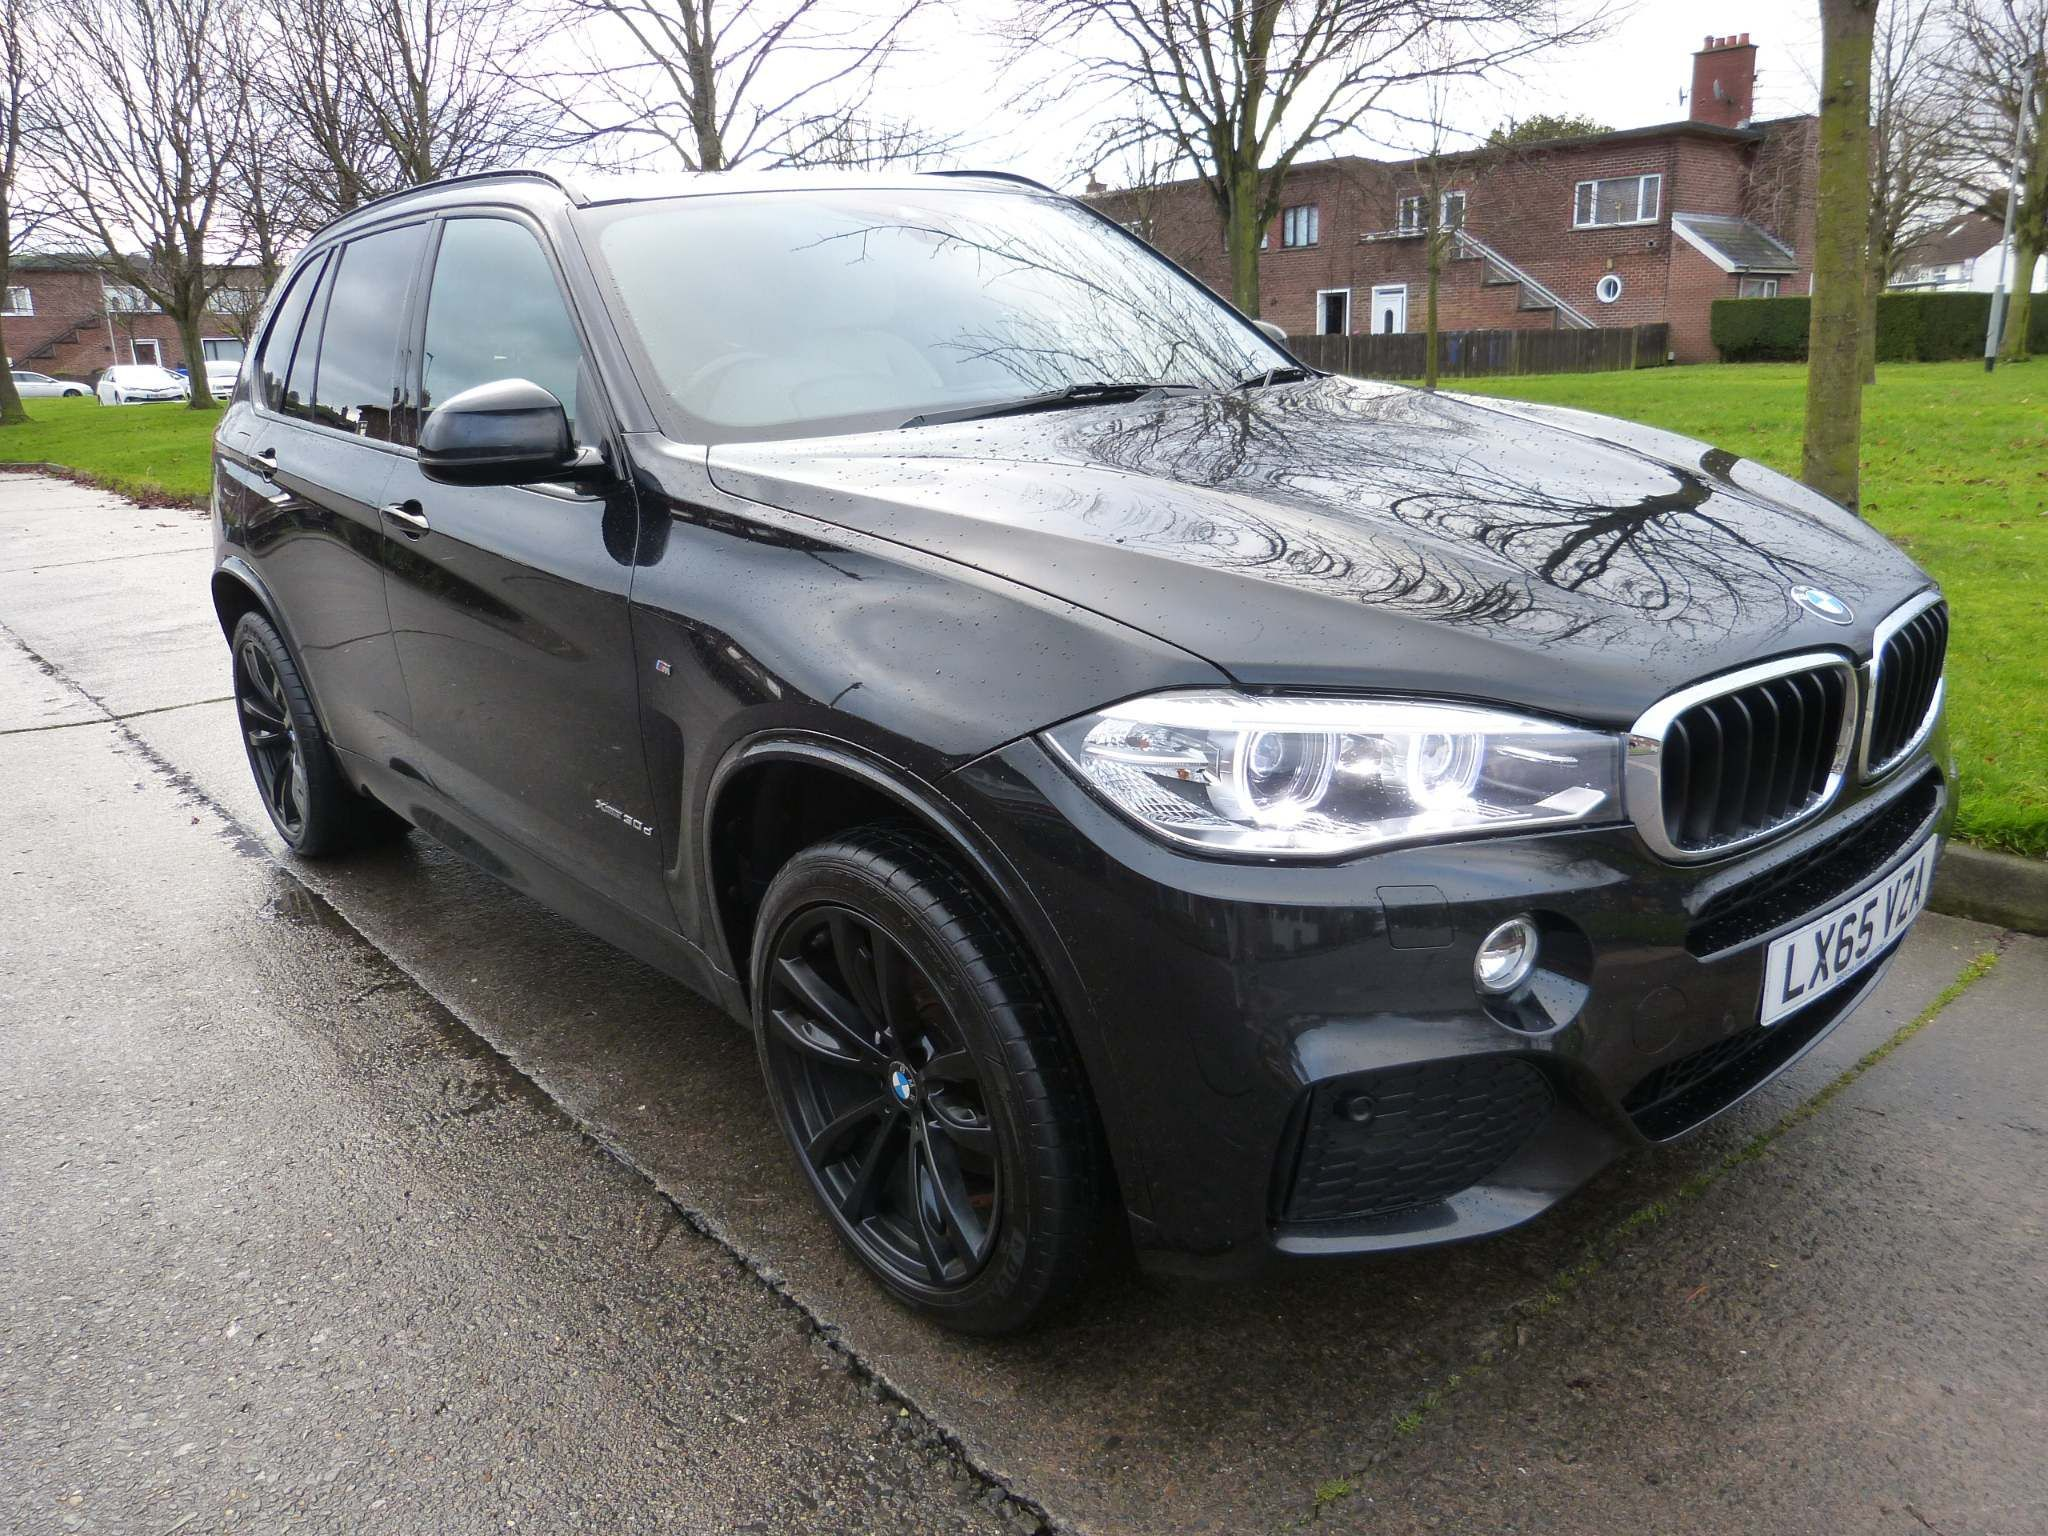 2015 BMW X5 3.0 30d M Sport Auto xDrive (s/s) Diesel Automatic seven seats, panoramic roof – Beechlawn Motors Belfast